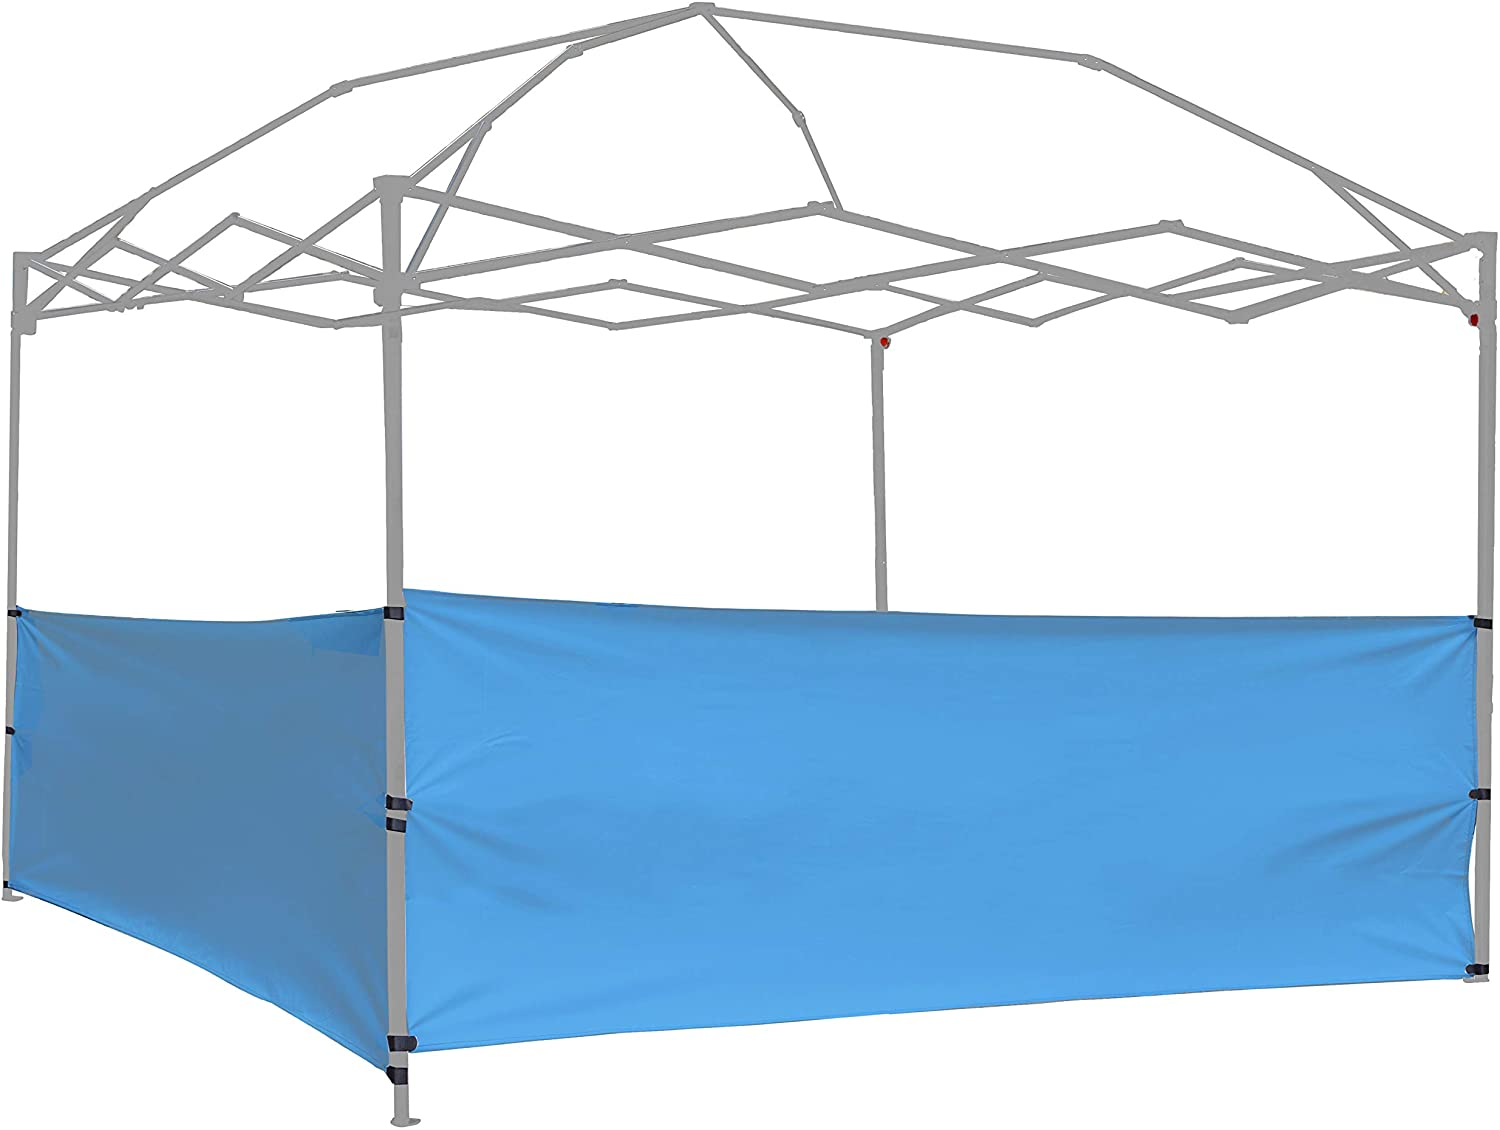 NINAT Canopy Sunwall Two Half Gazebo Privacy Panel Sidewalls Sunshade Screen Replacement Kit for 10ft Canopies Gazebo Patio Tent Waterproof 2 Packs Half Side Walls Only Blue